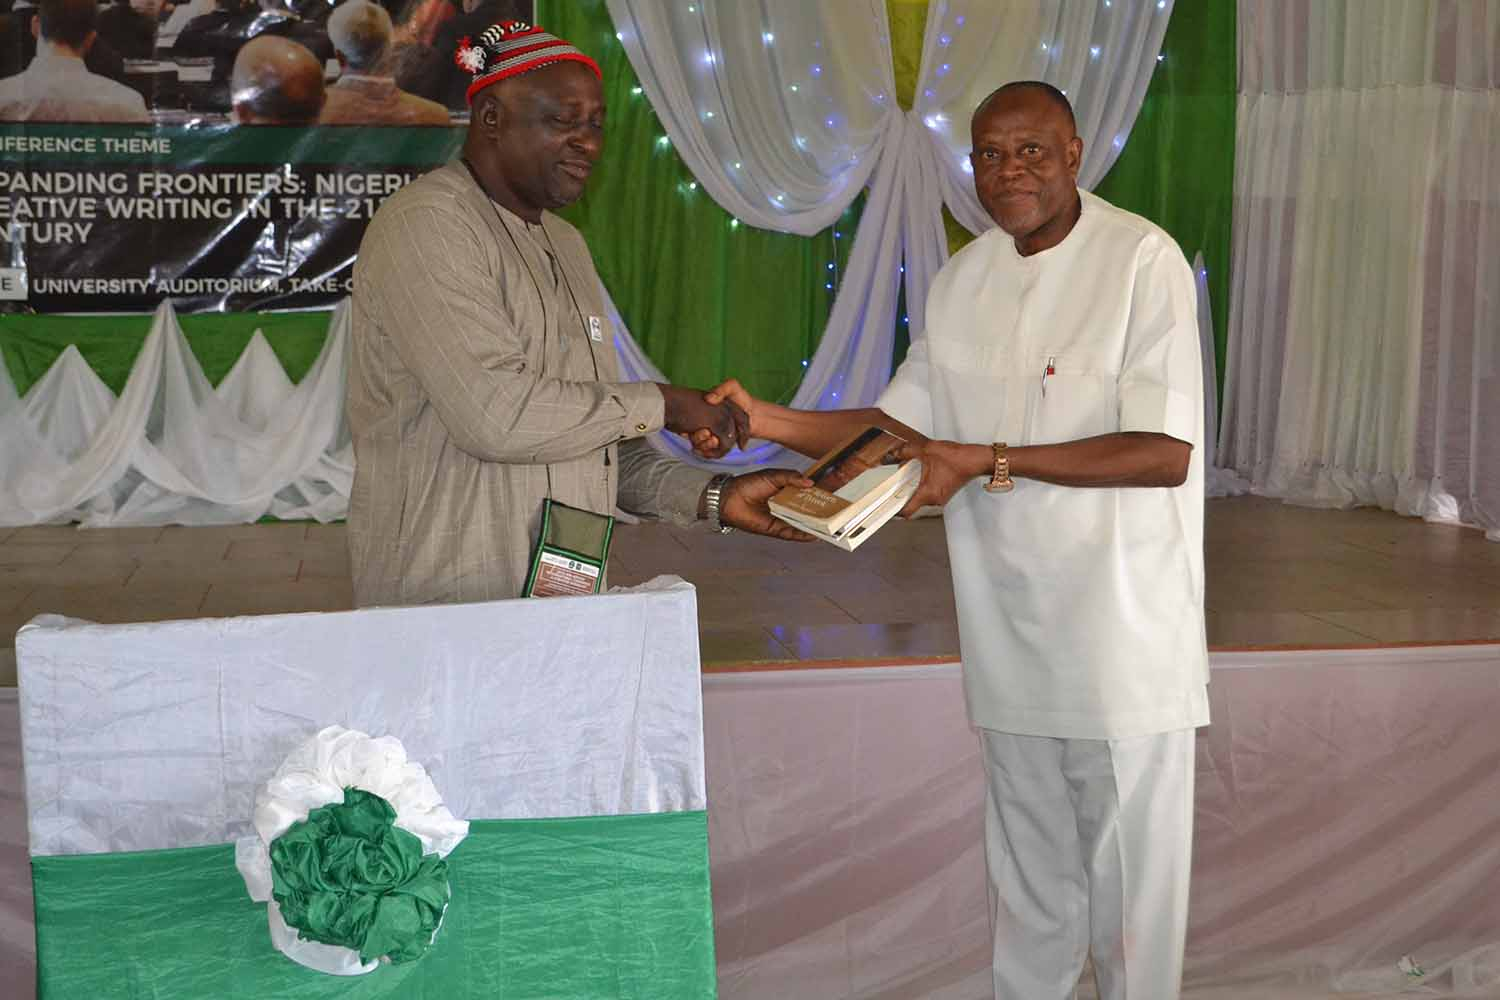 Presentation of books to the University by Mallam Denja Abdullahi, the ANA president. The bag of books was received by the Deputy Vice Chancellor Academic, Prof Sunday Elom